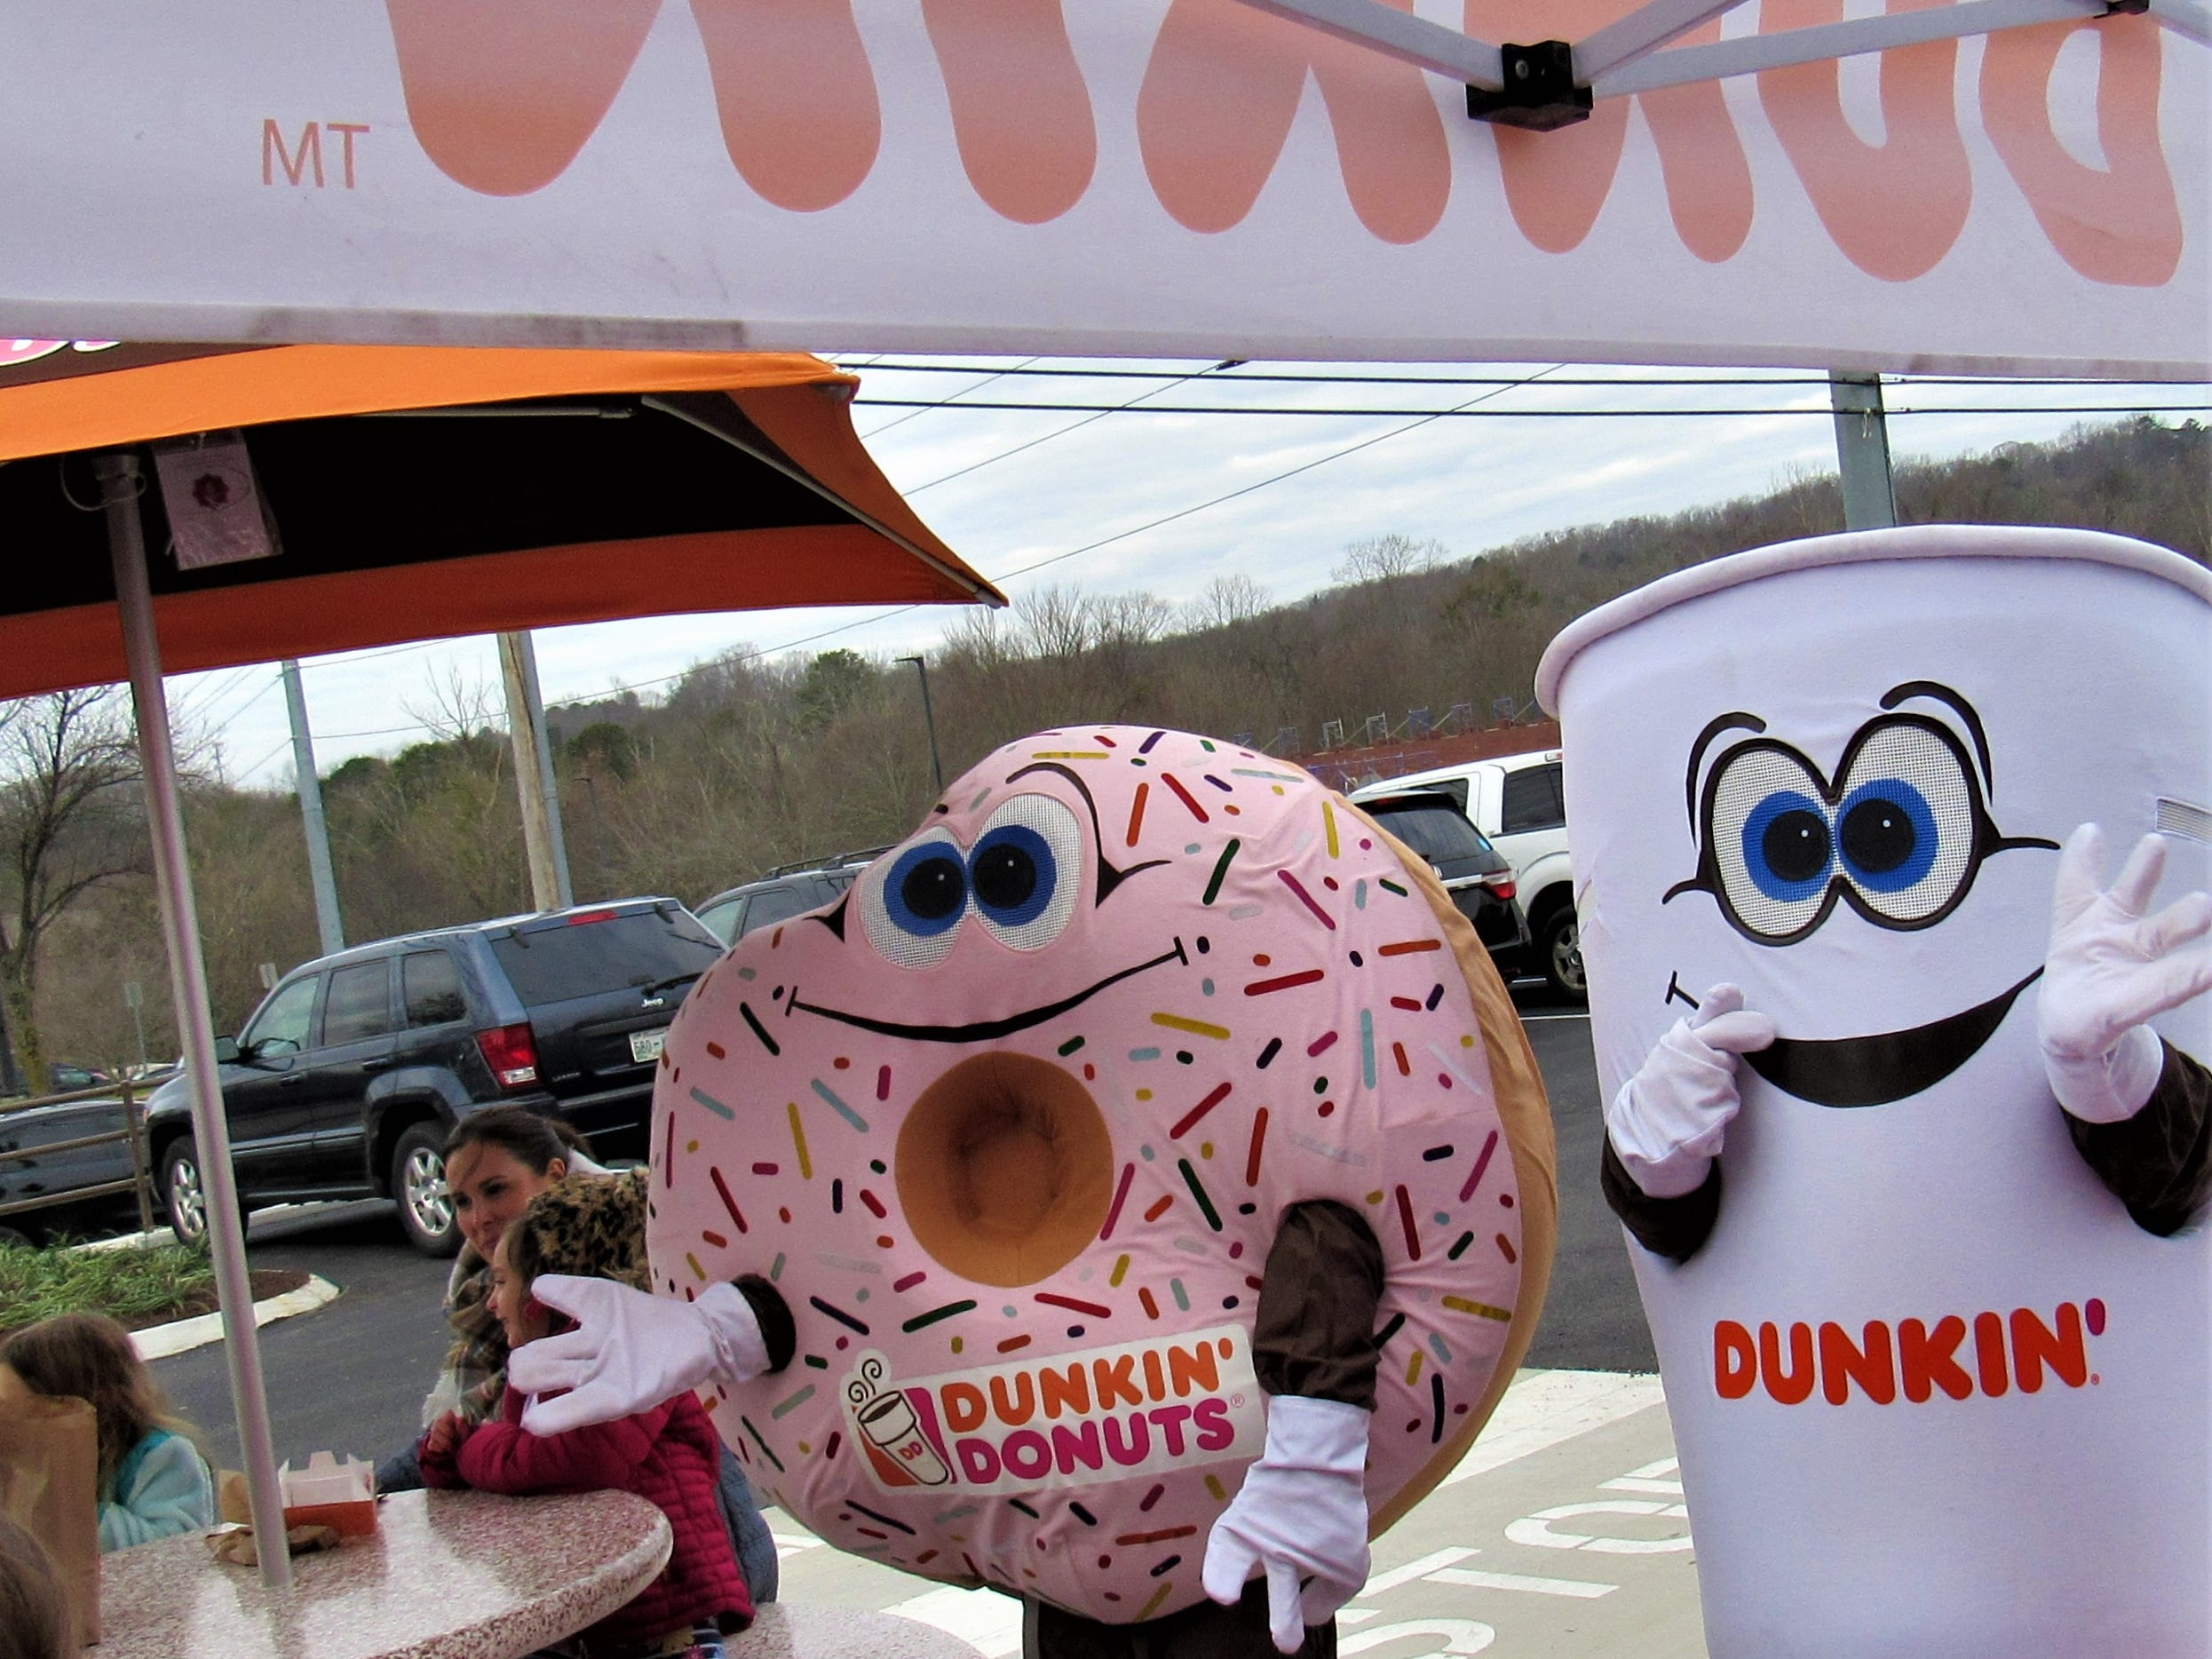 Donut and Cuppy mascots greeted attendees at the event.